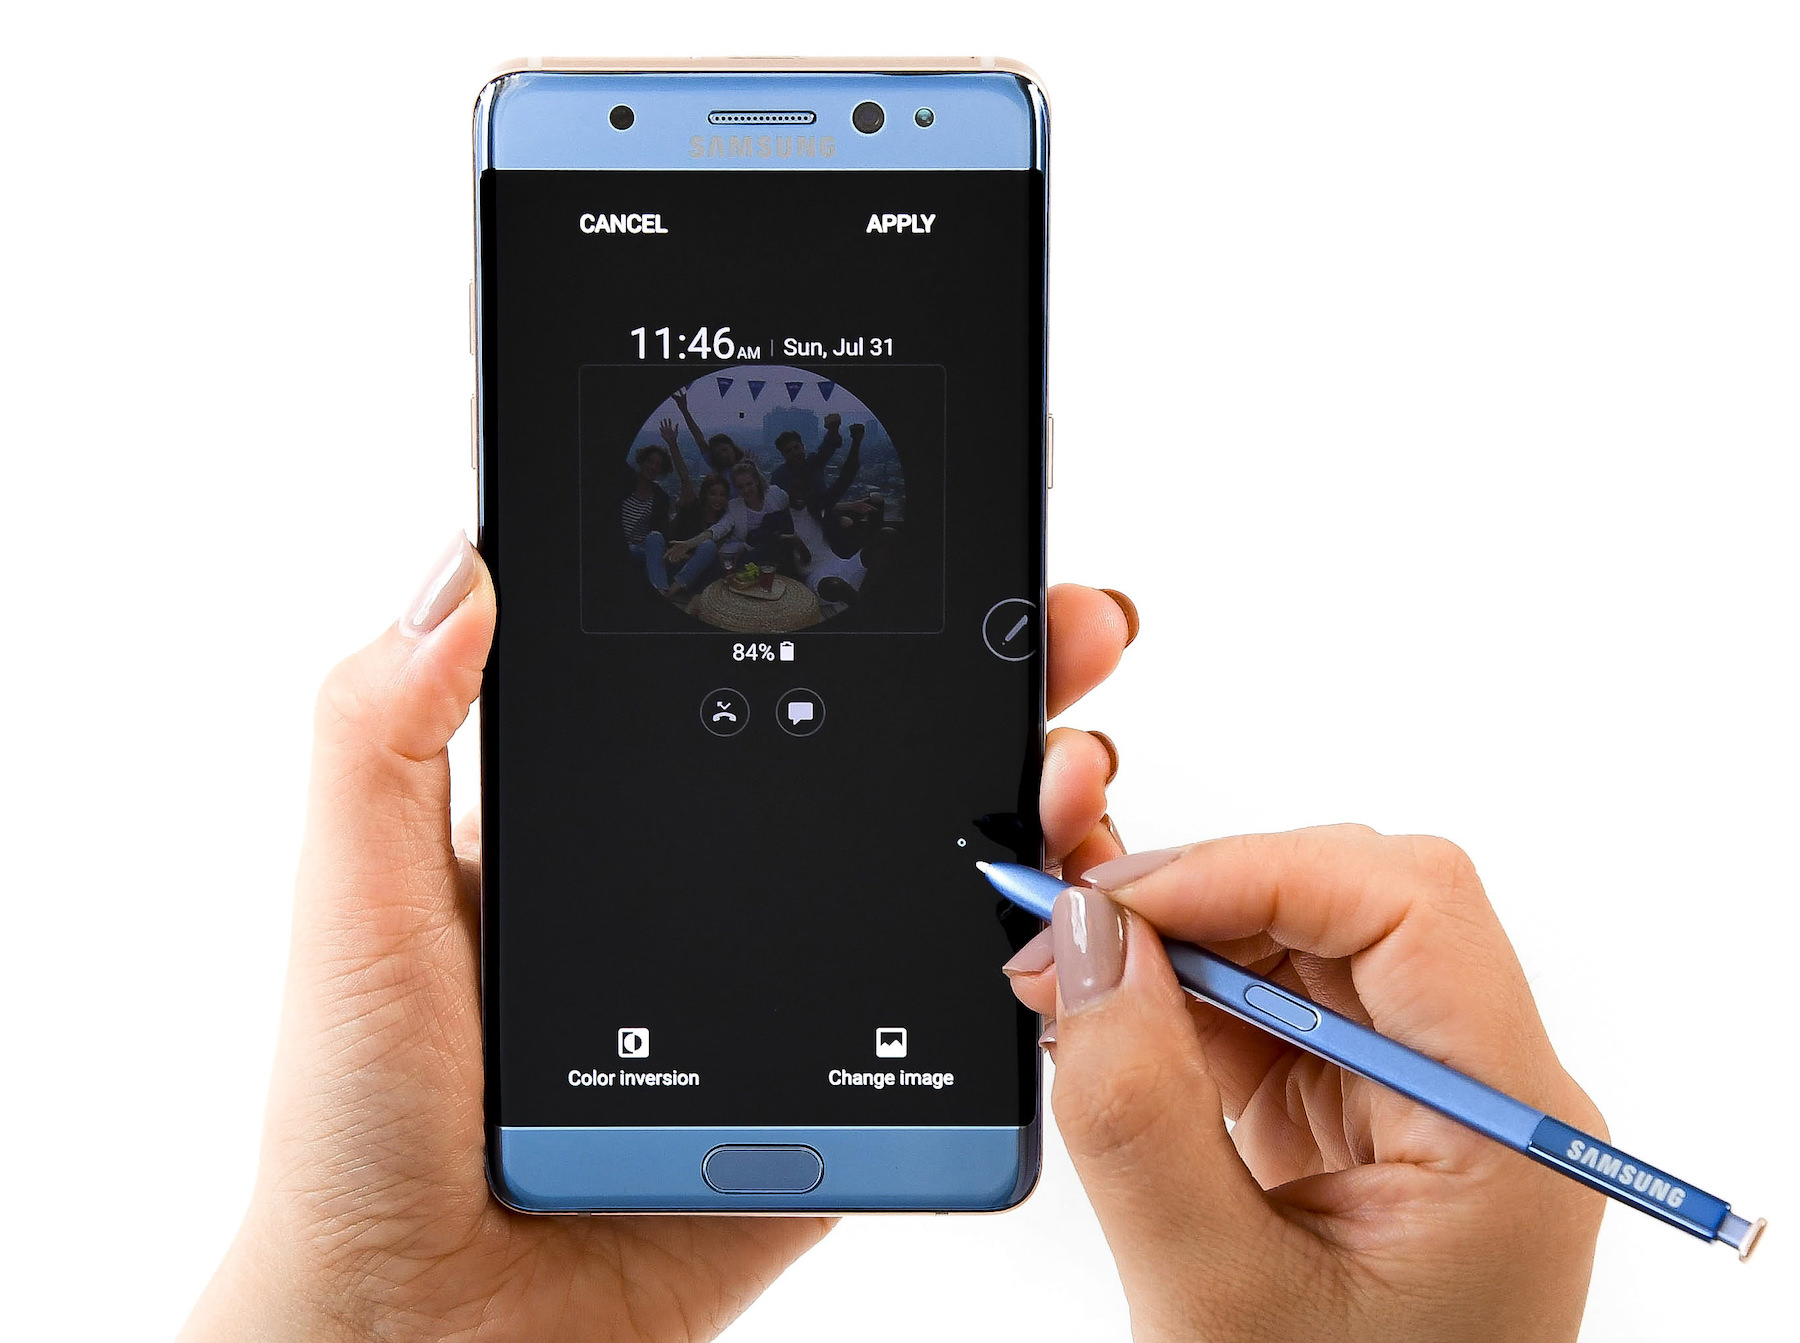 Samsung Galaxy Note 7 S Pen 23